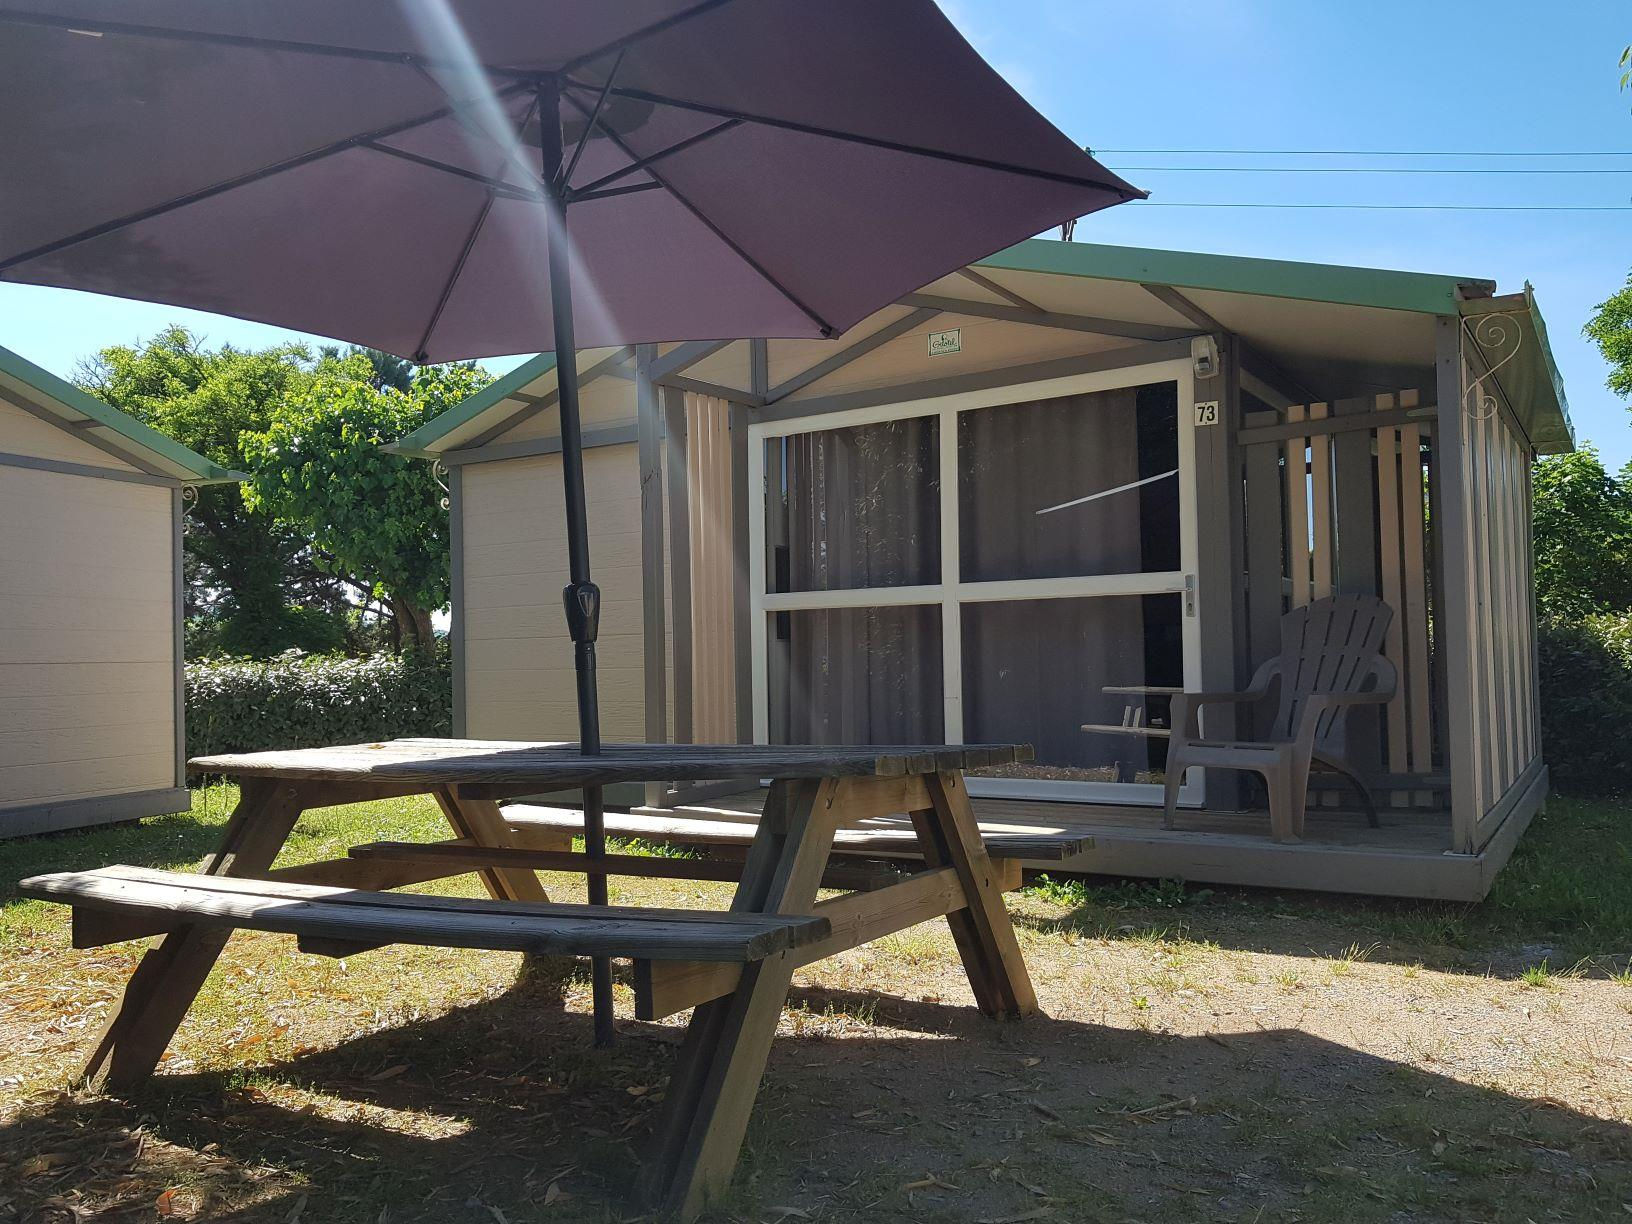 Accommodation - Chalet Titom - Camping Le Grillou